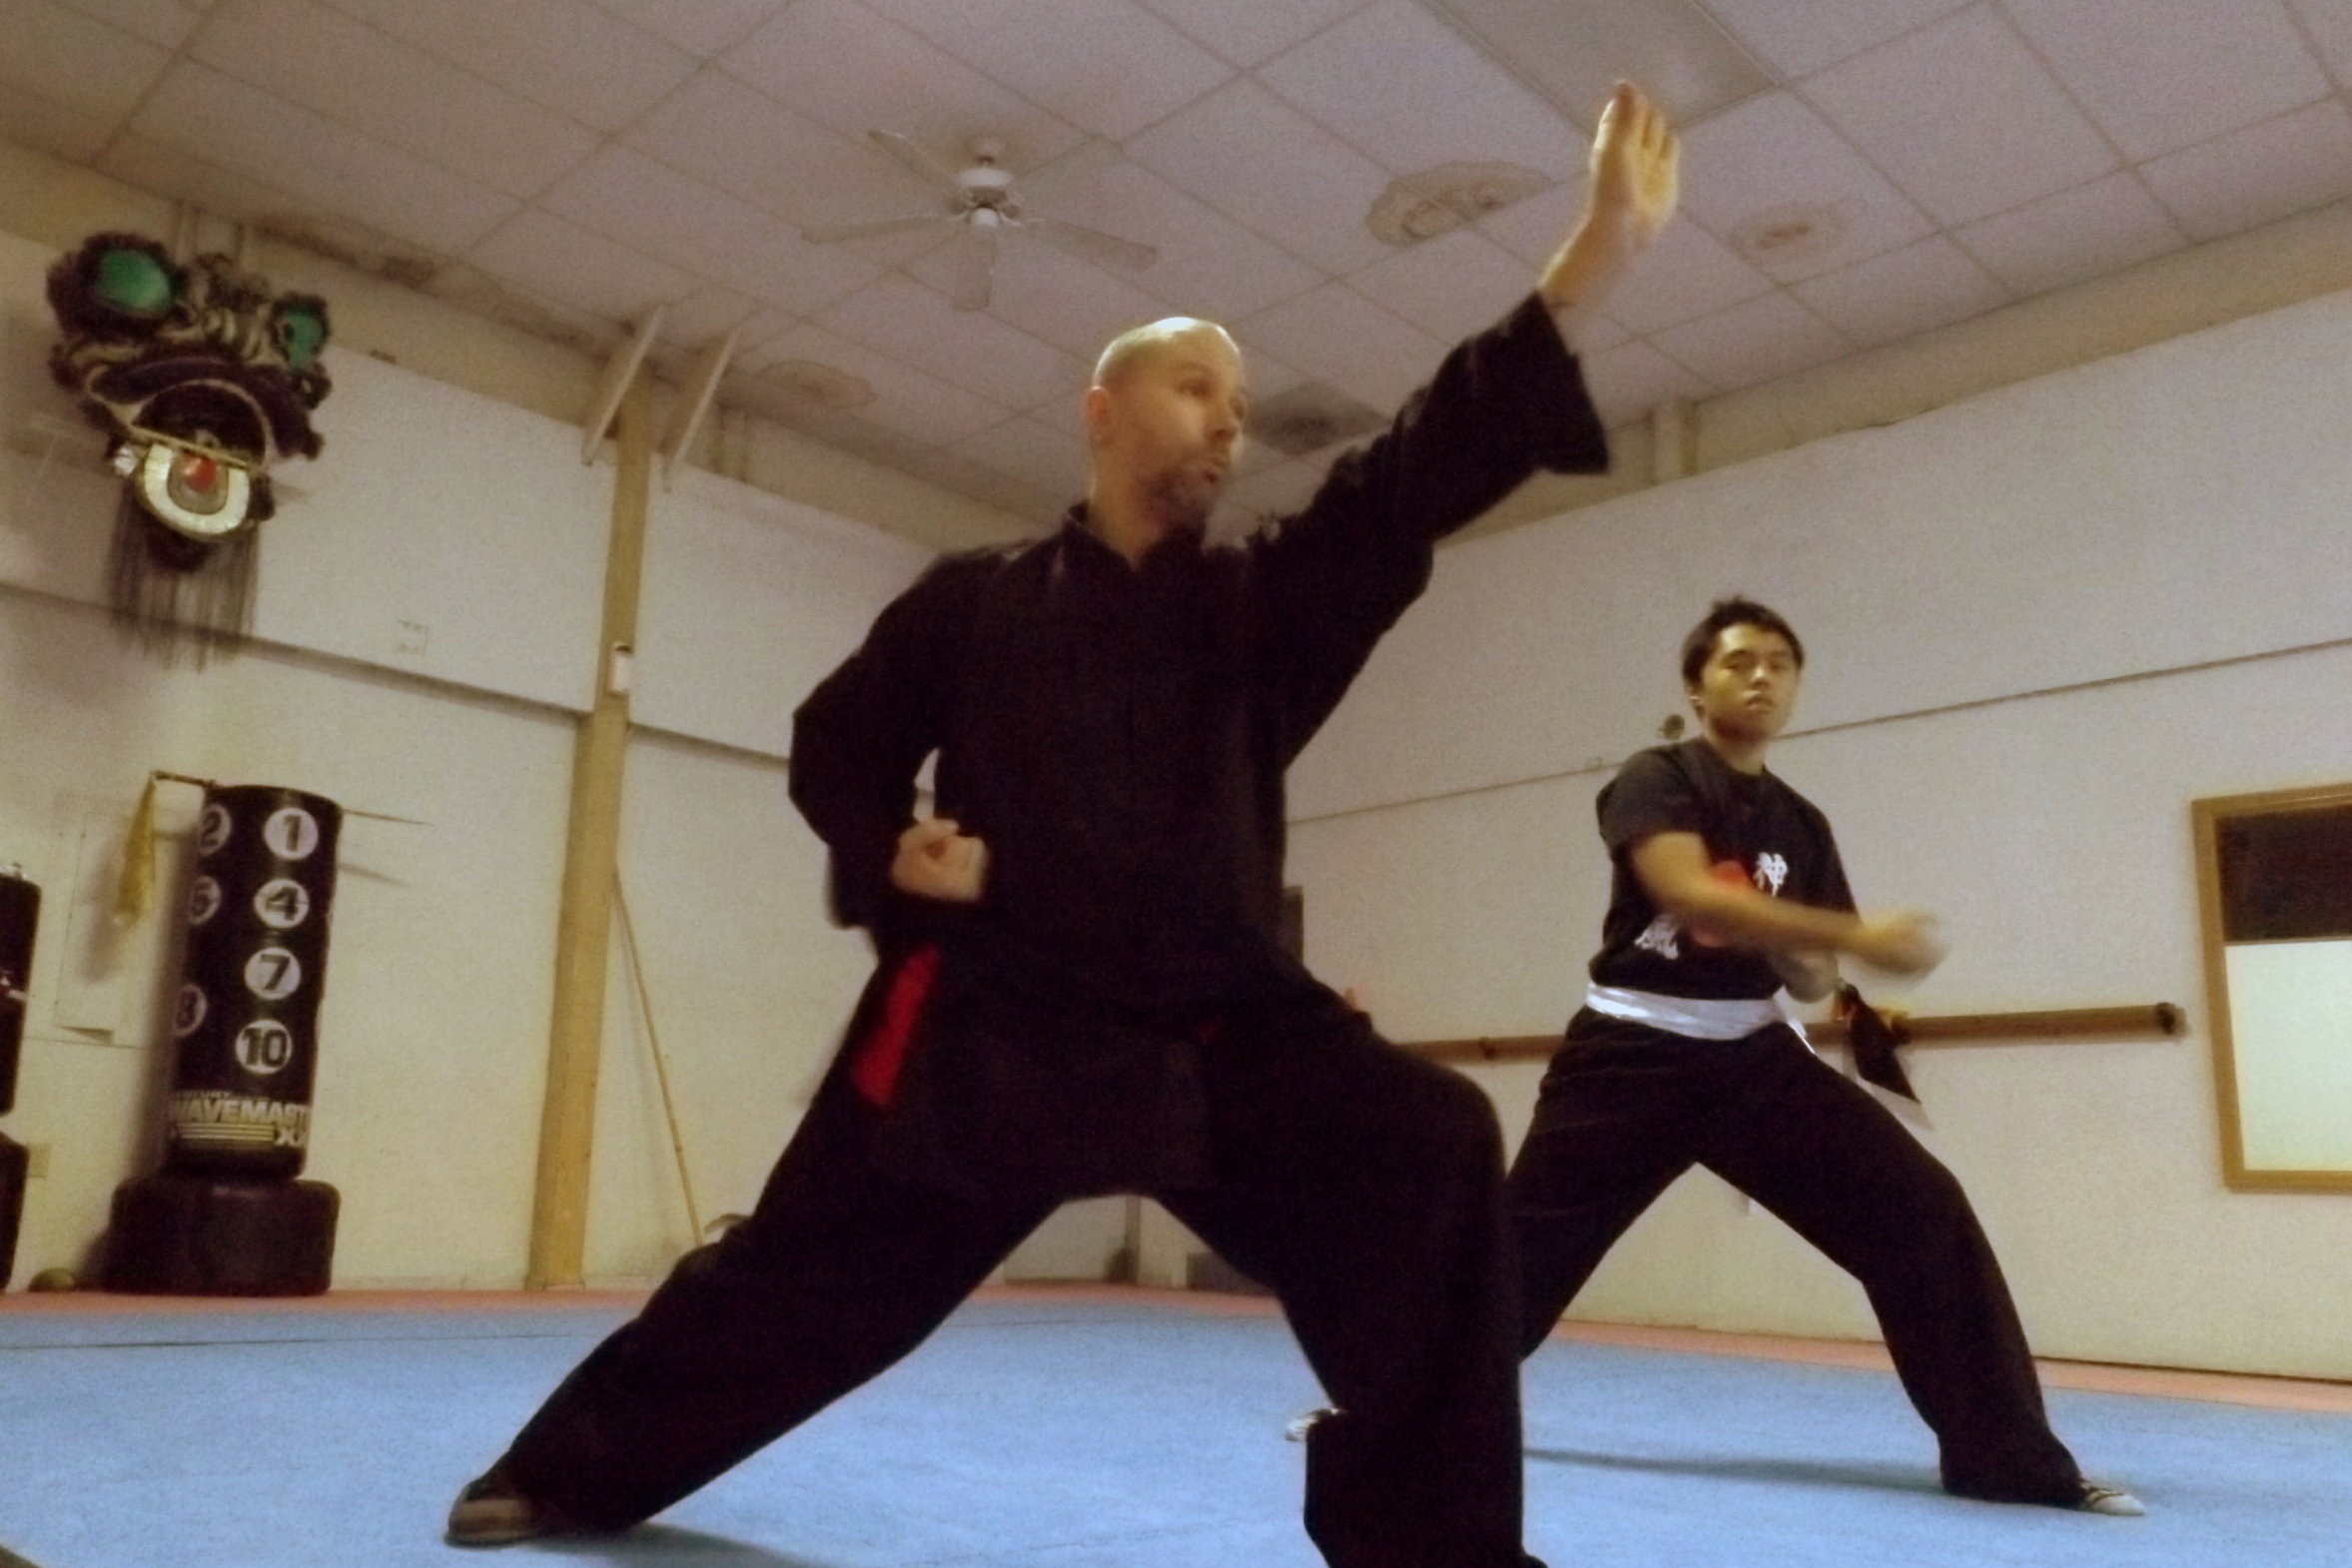 Sifu Norm has been studying traditional Kung Fu for over 18 years within the Shaolin Kung Fu system he teaches. His passion and primary focus is on traditional mind and body conditioning, stances, empty hand and weapons forms. He emphasizes the artistry of Kung Fu for the benefits it gives the practitioner, however the heart of even the most beautiful Kung Fu movement is rooted in martial application. Sifu Norm has trained under Sifu Mathers, and Sigung Eric Lee as well as others, but it was Sifu Brandon who taught him from beginner to his current second degree black sash level, and title as Sifu.